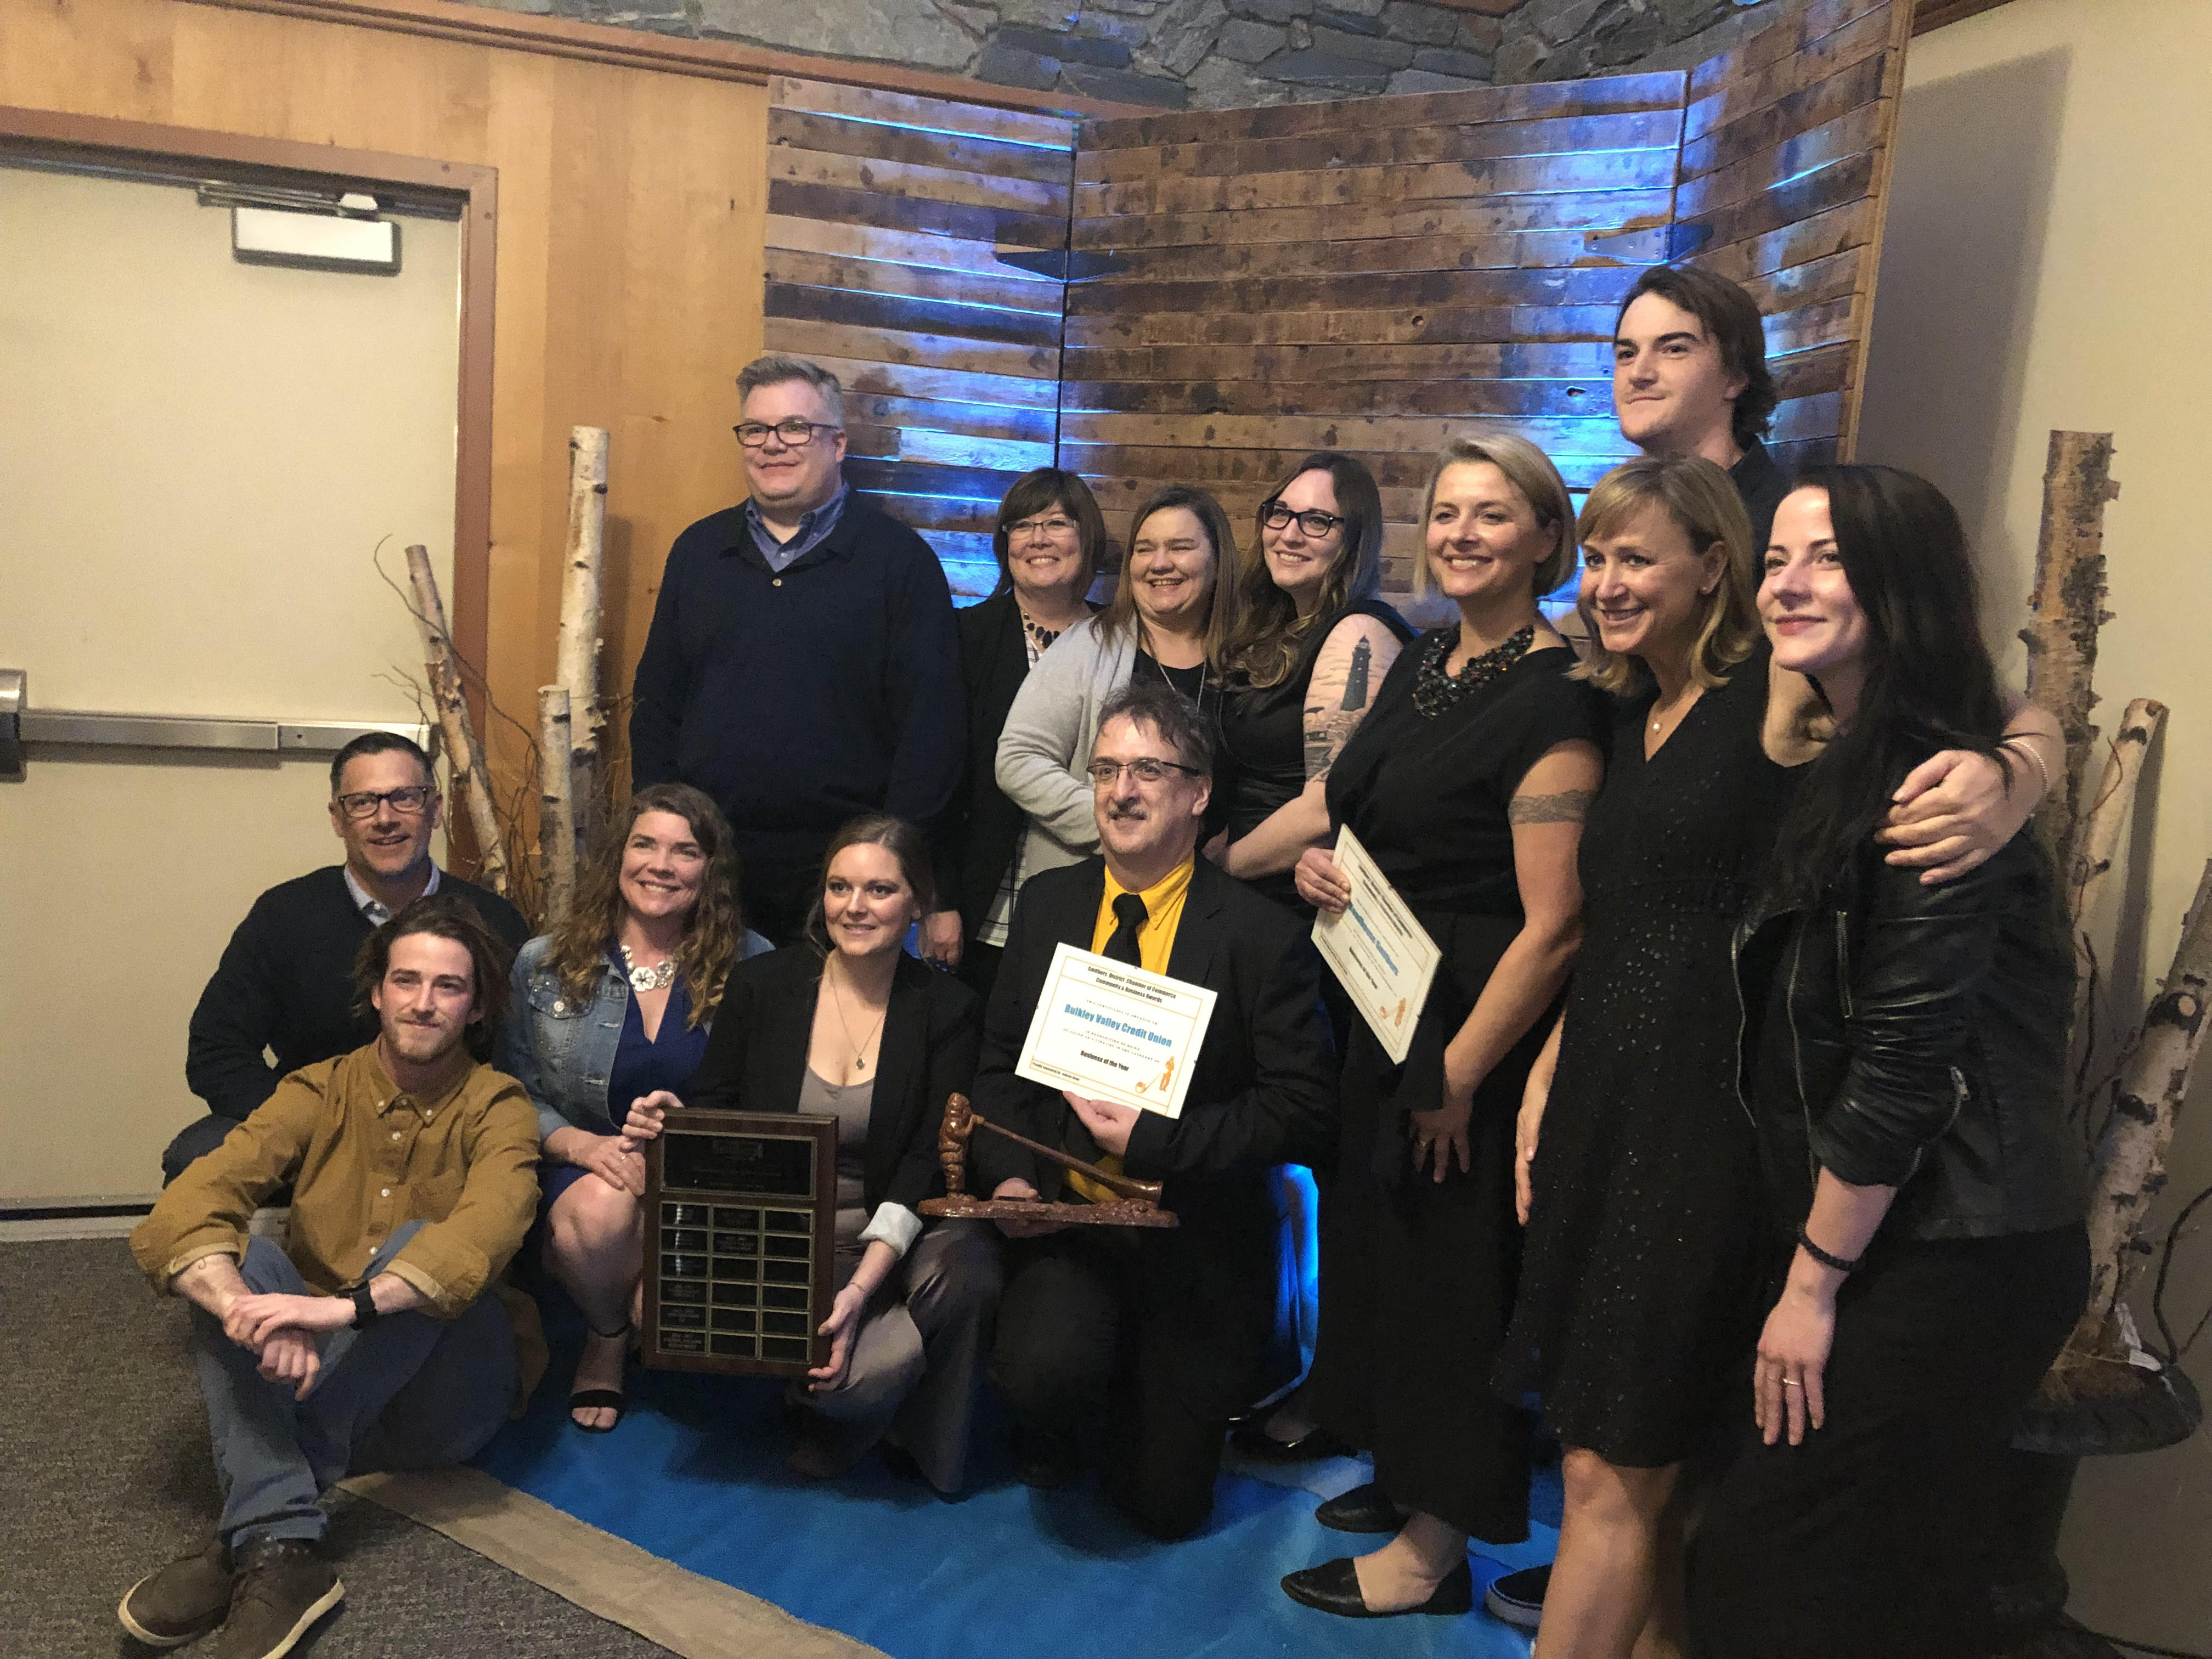 Local businesses fill Hudson Bay Lodge for 2019 Community & Business Excellence awards - My Bulkley Lakes Now